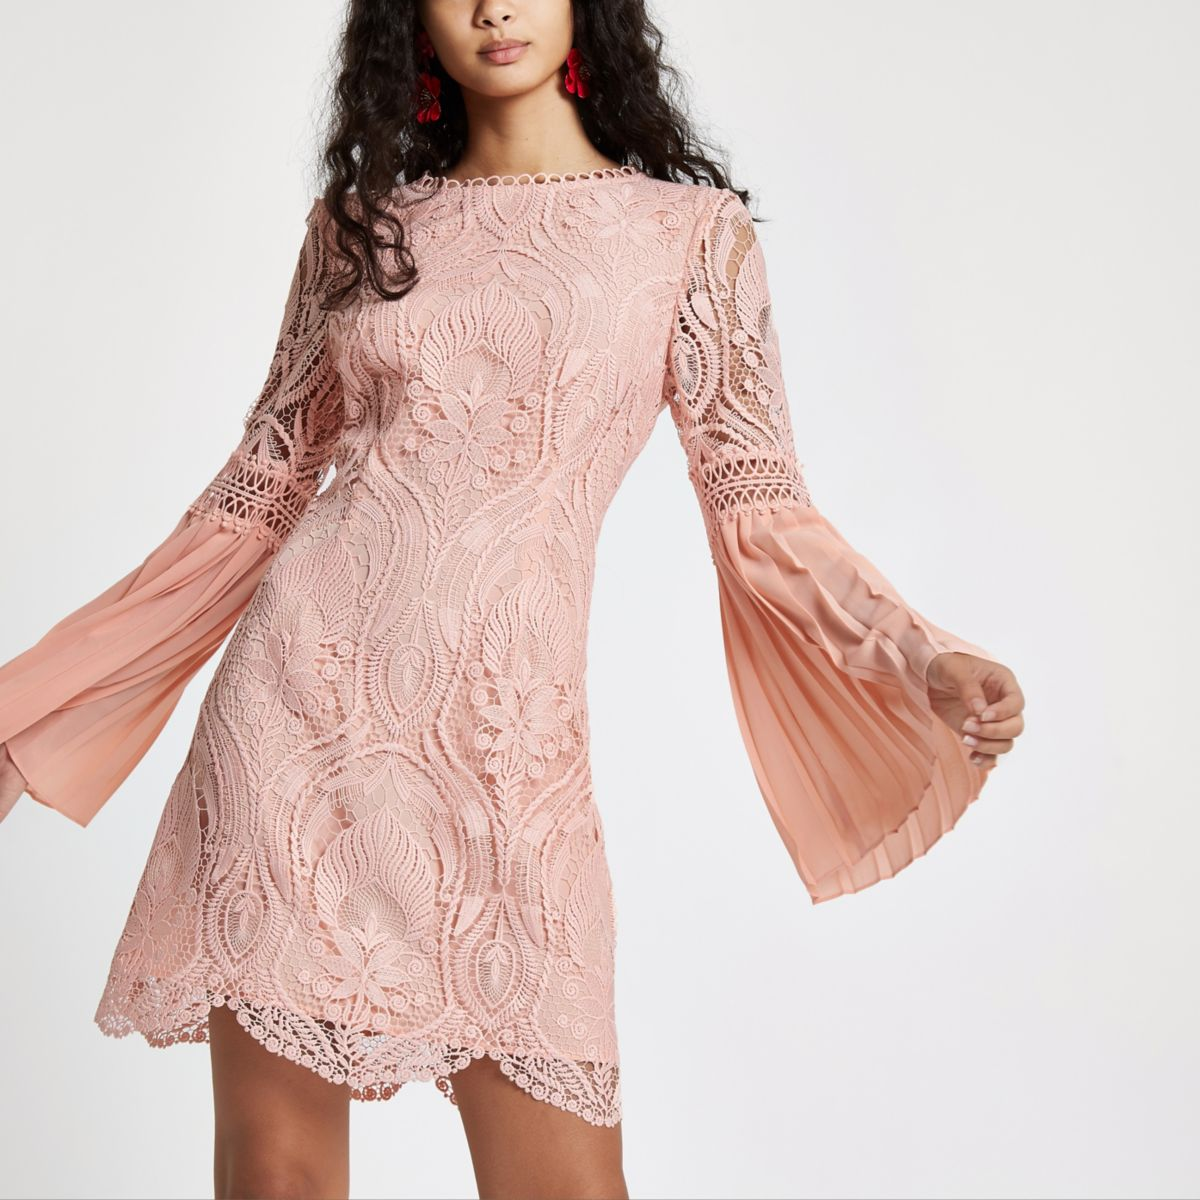 Pink Lace Embroidered Dress                                  Pink Lace Embroidered Dress by River Island